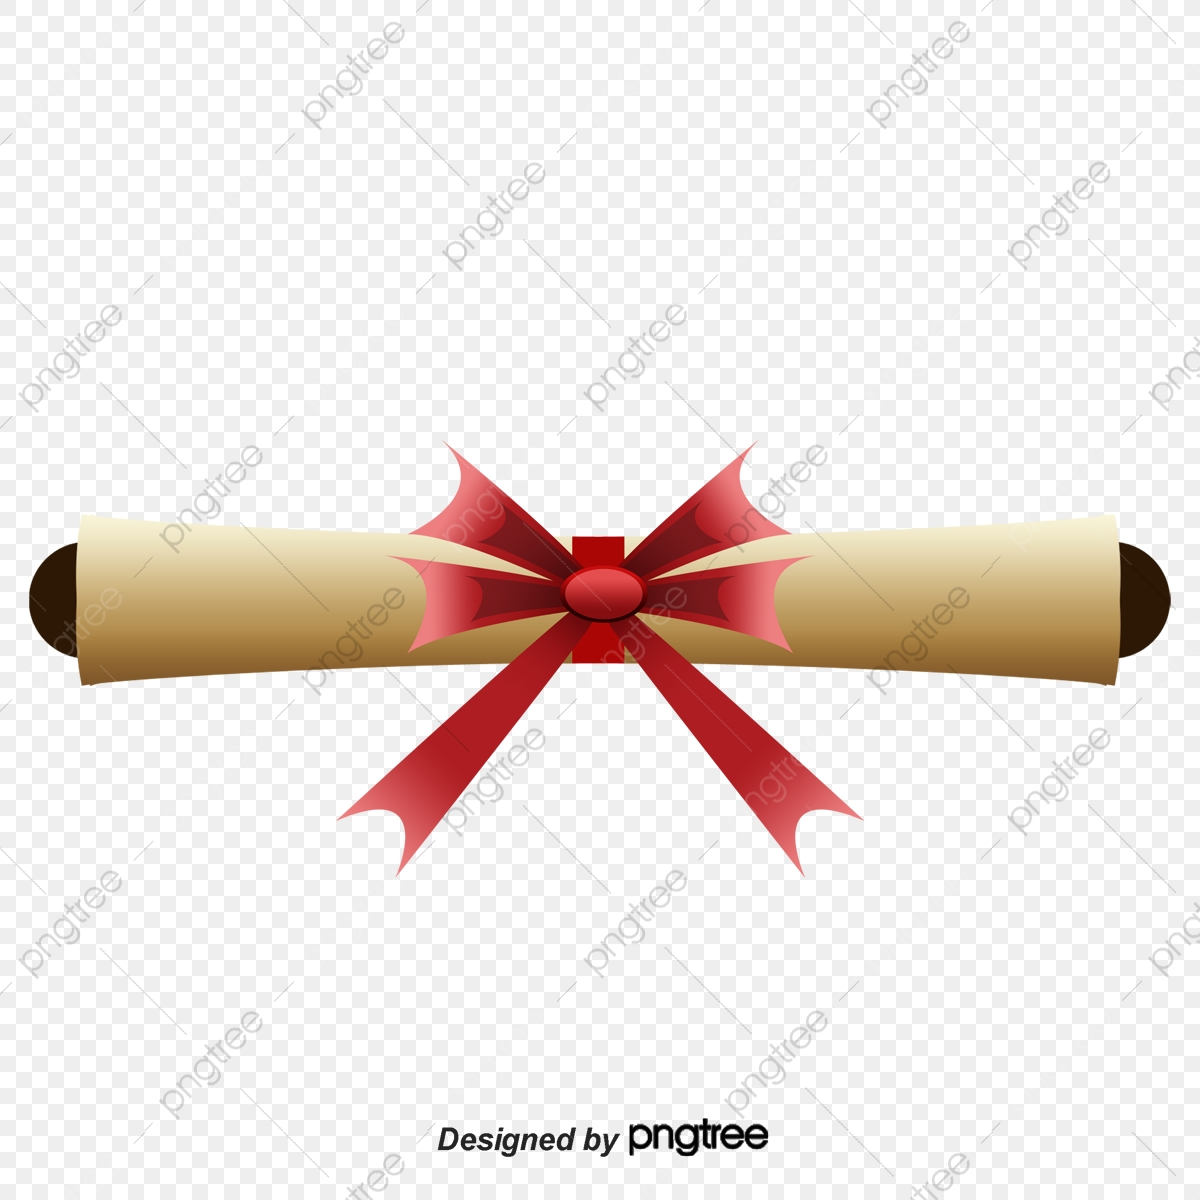 Rolled certificate rolls . Diploma clipart ribbon